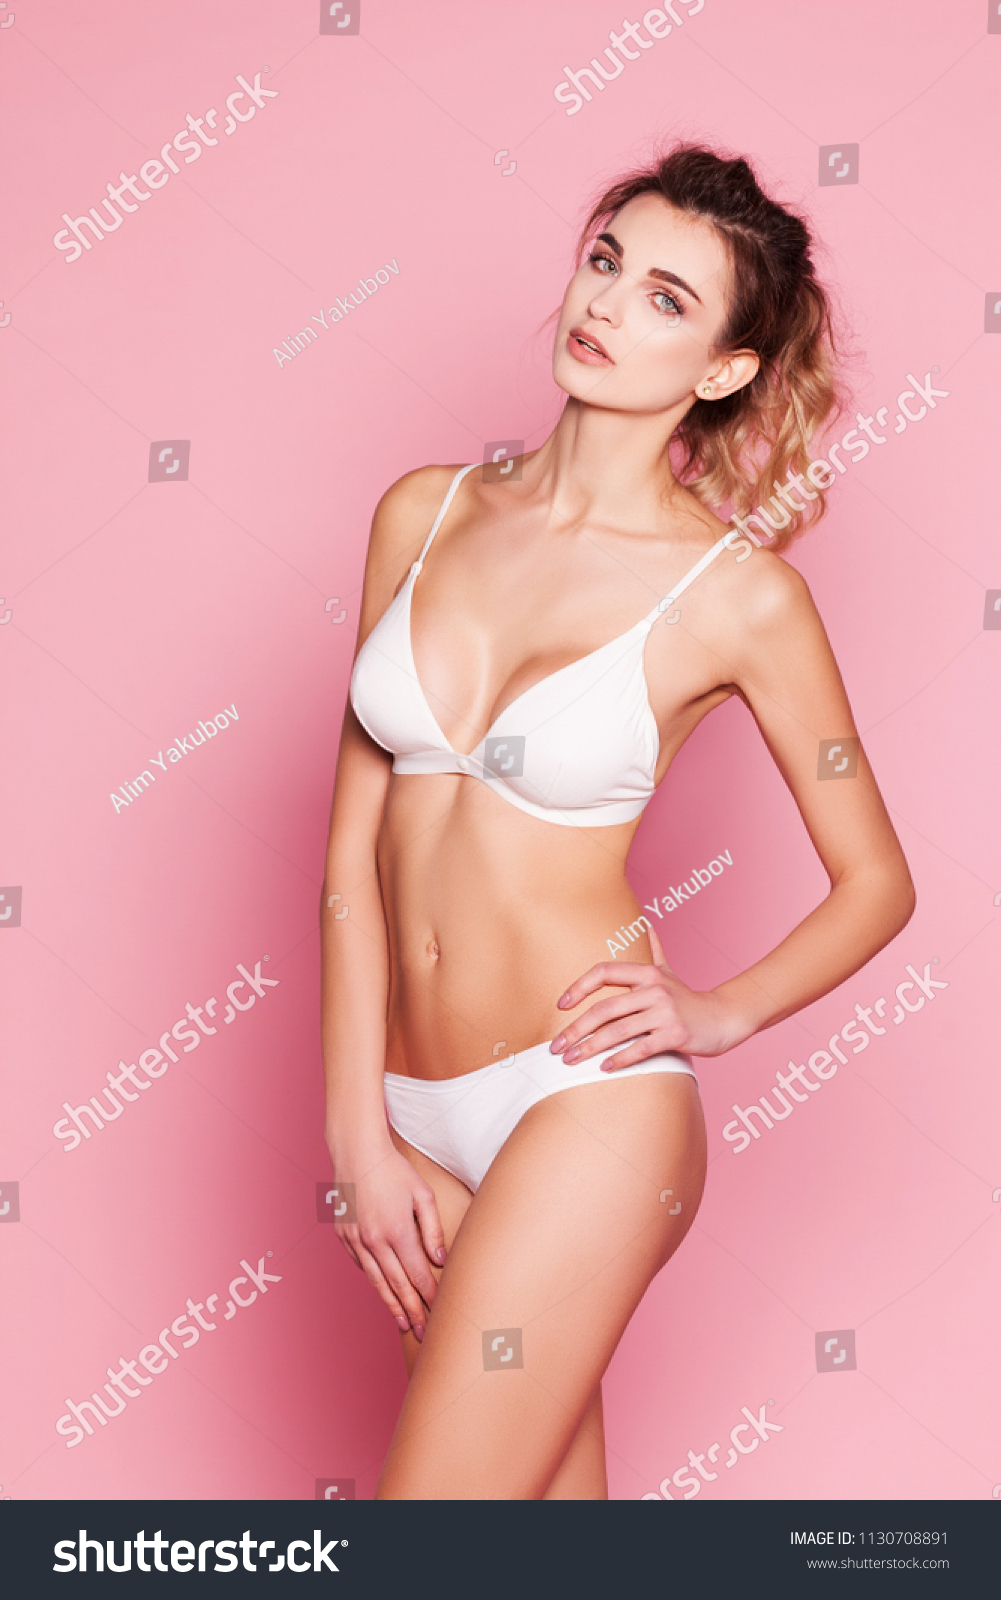 7e348ad0277 Beautiful Woman White Lingerie On Pink Stock Photo (Edit Now ...